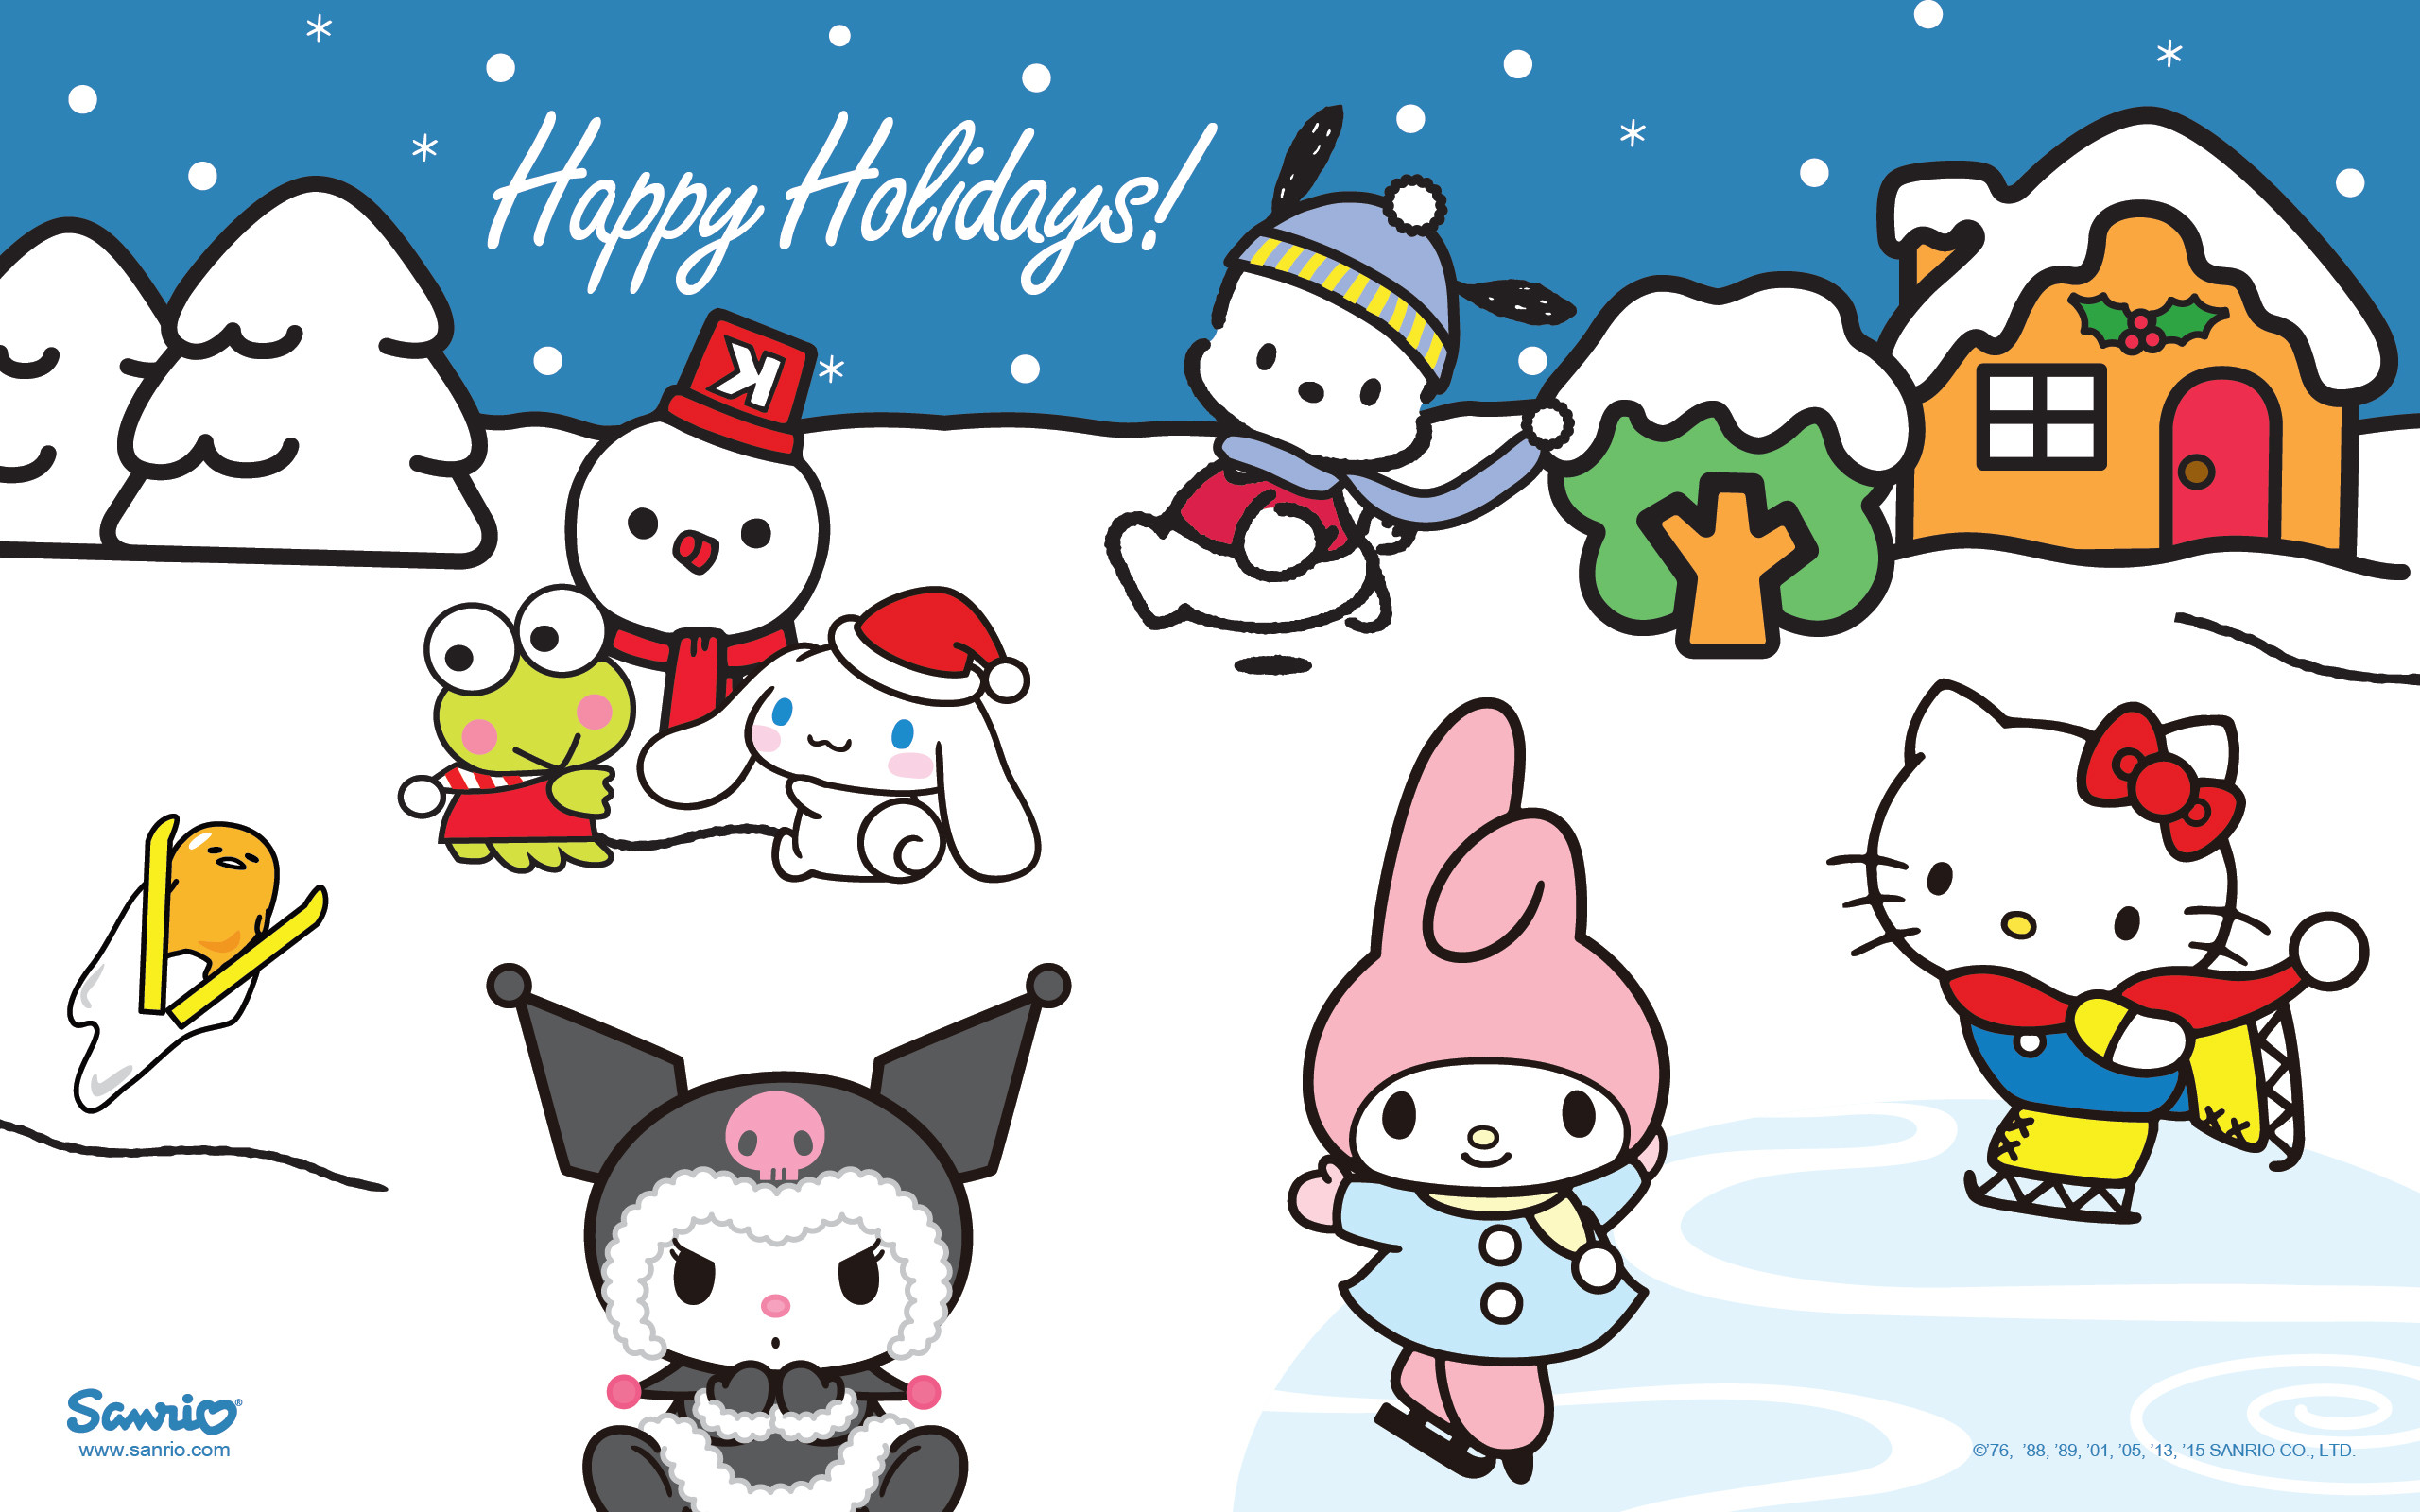 The official website for all things Sanrio – the official home of Hello  Kitty & Friends – games, events, characters, videos, shopping and more!